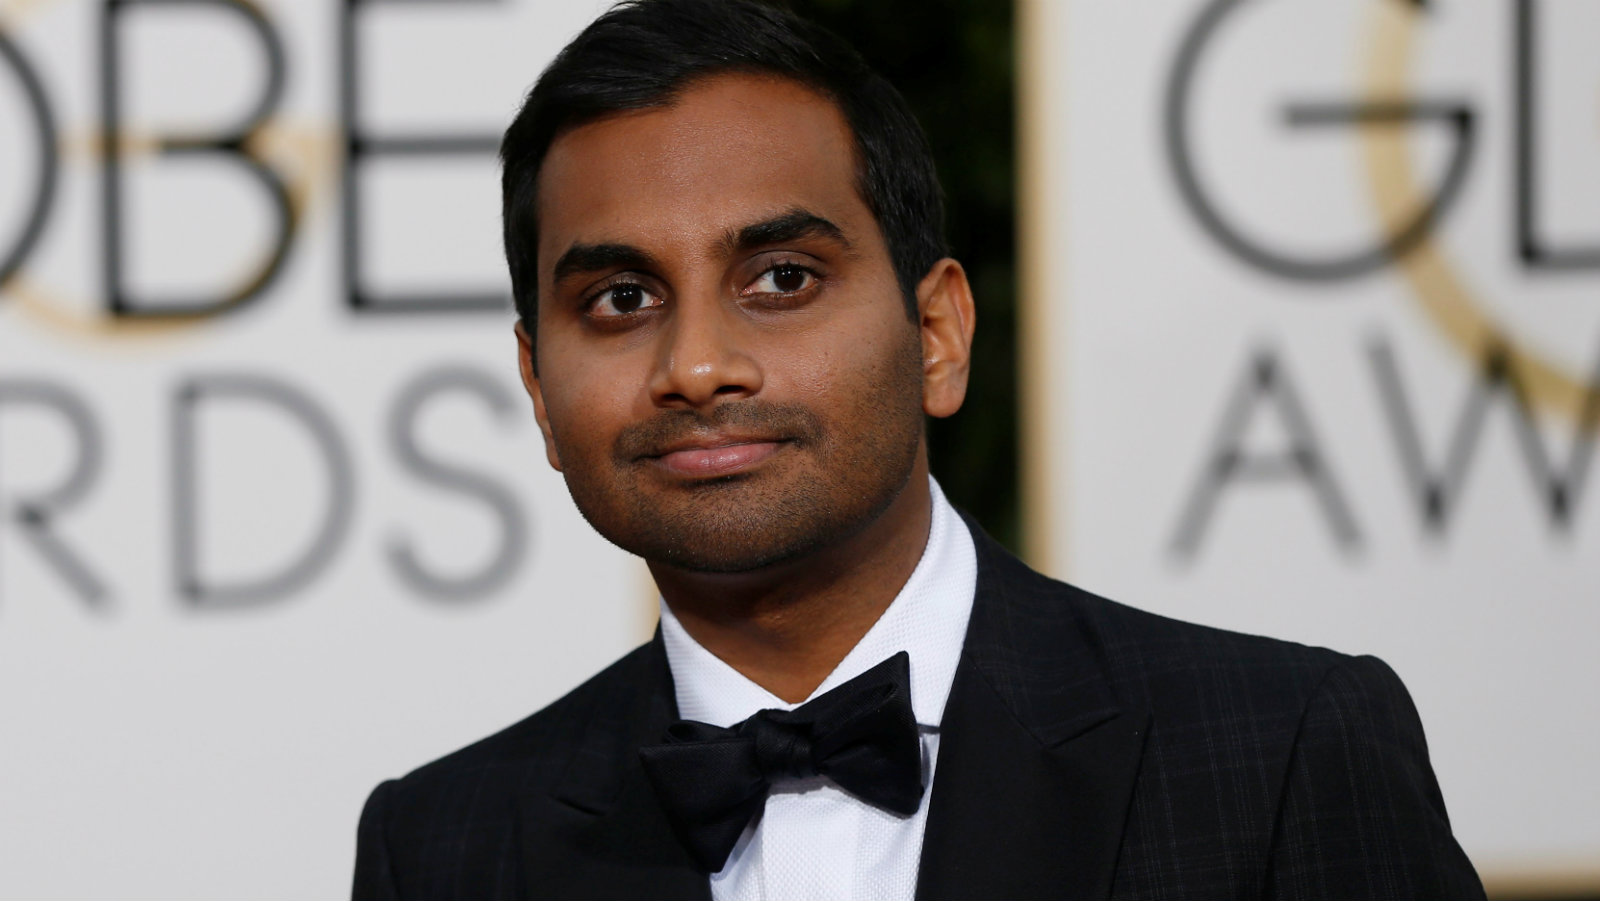 Actor Aziz Ansari arrives at the 73rd Golden Globe Awards in Beverly Hills, California, U.S. on January 10, 2016.